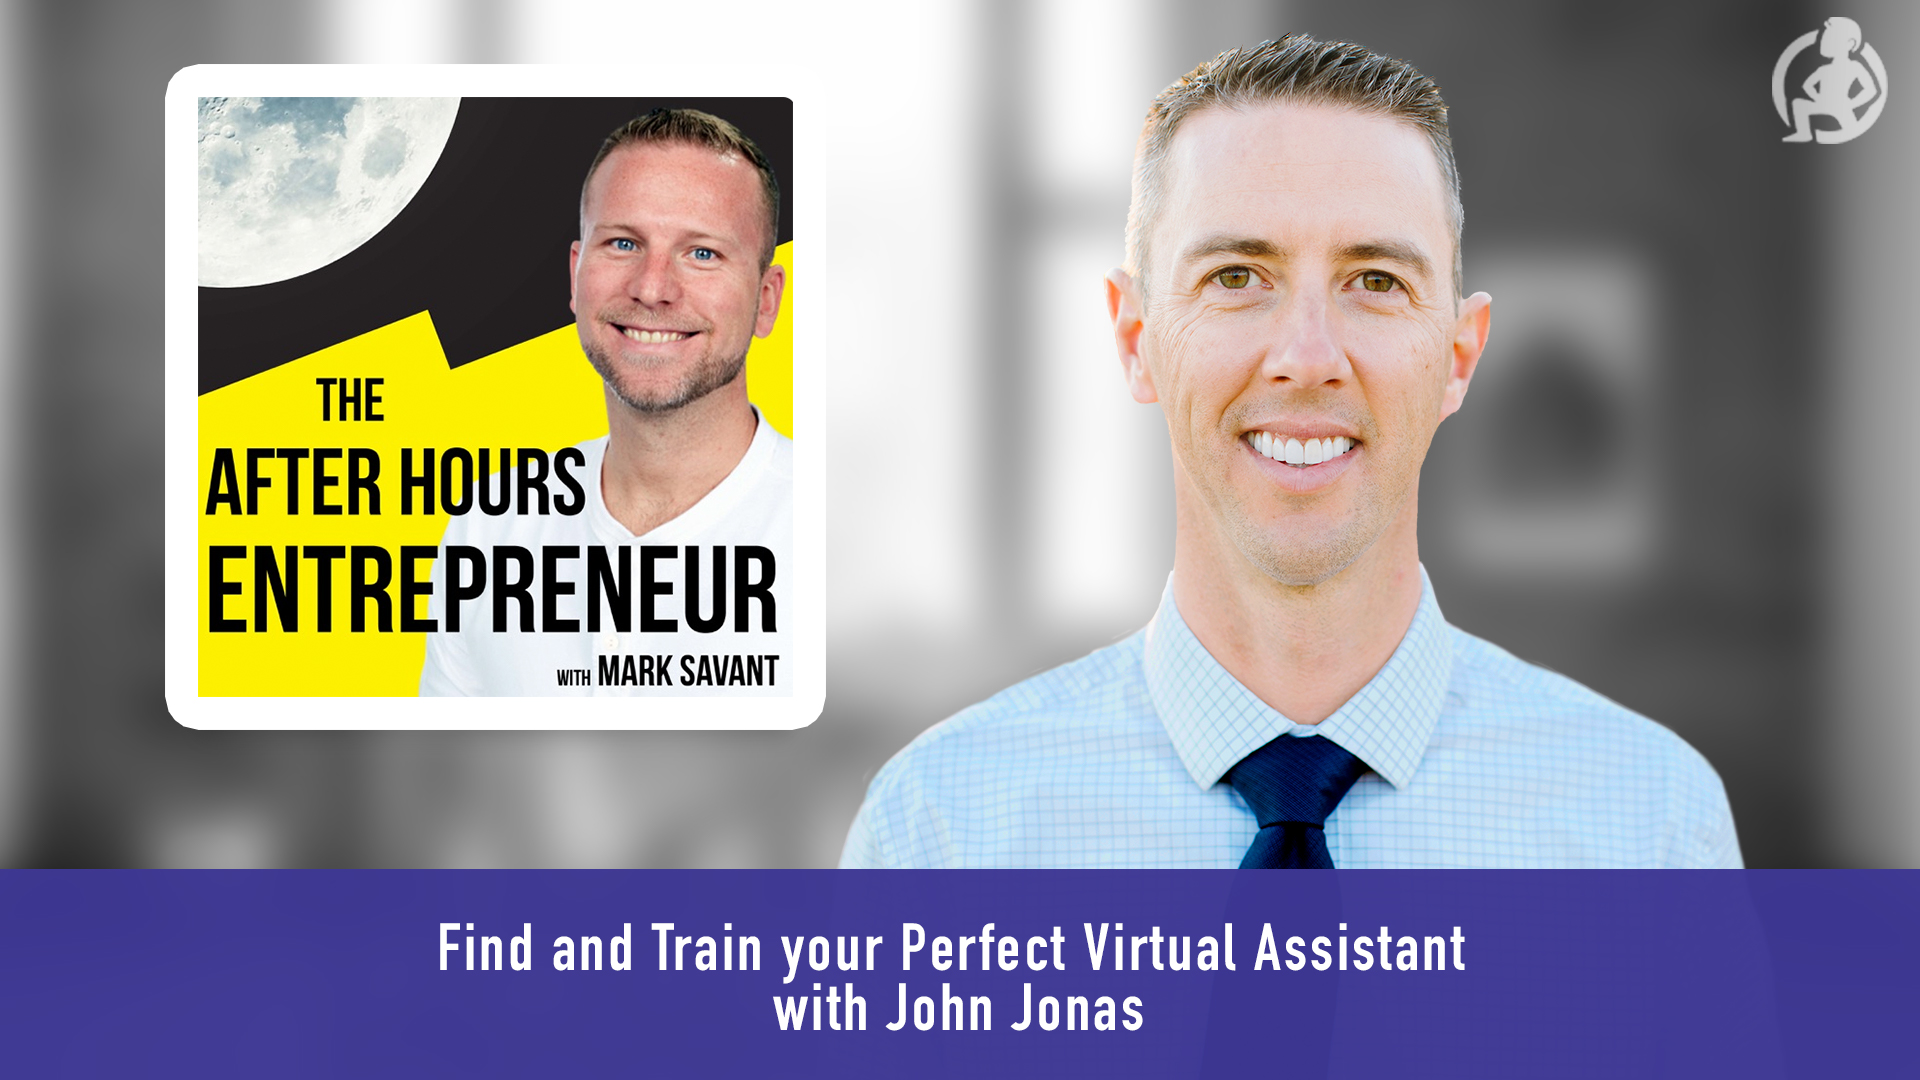 Find and Train your Perfect Virtual Assistant _ John Jonas